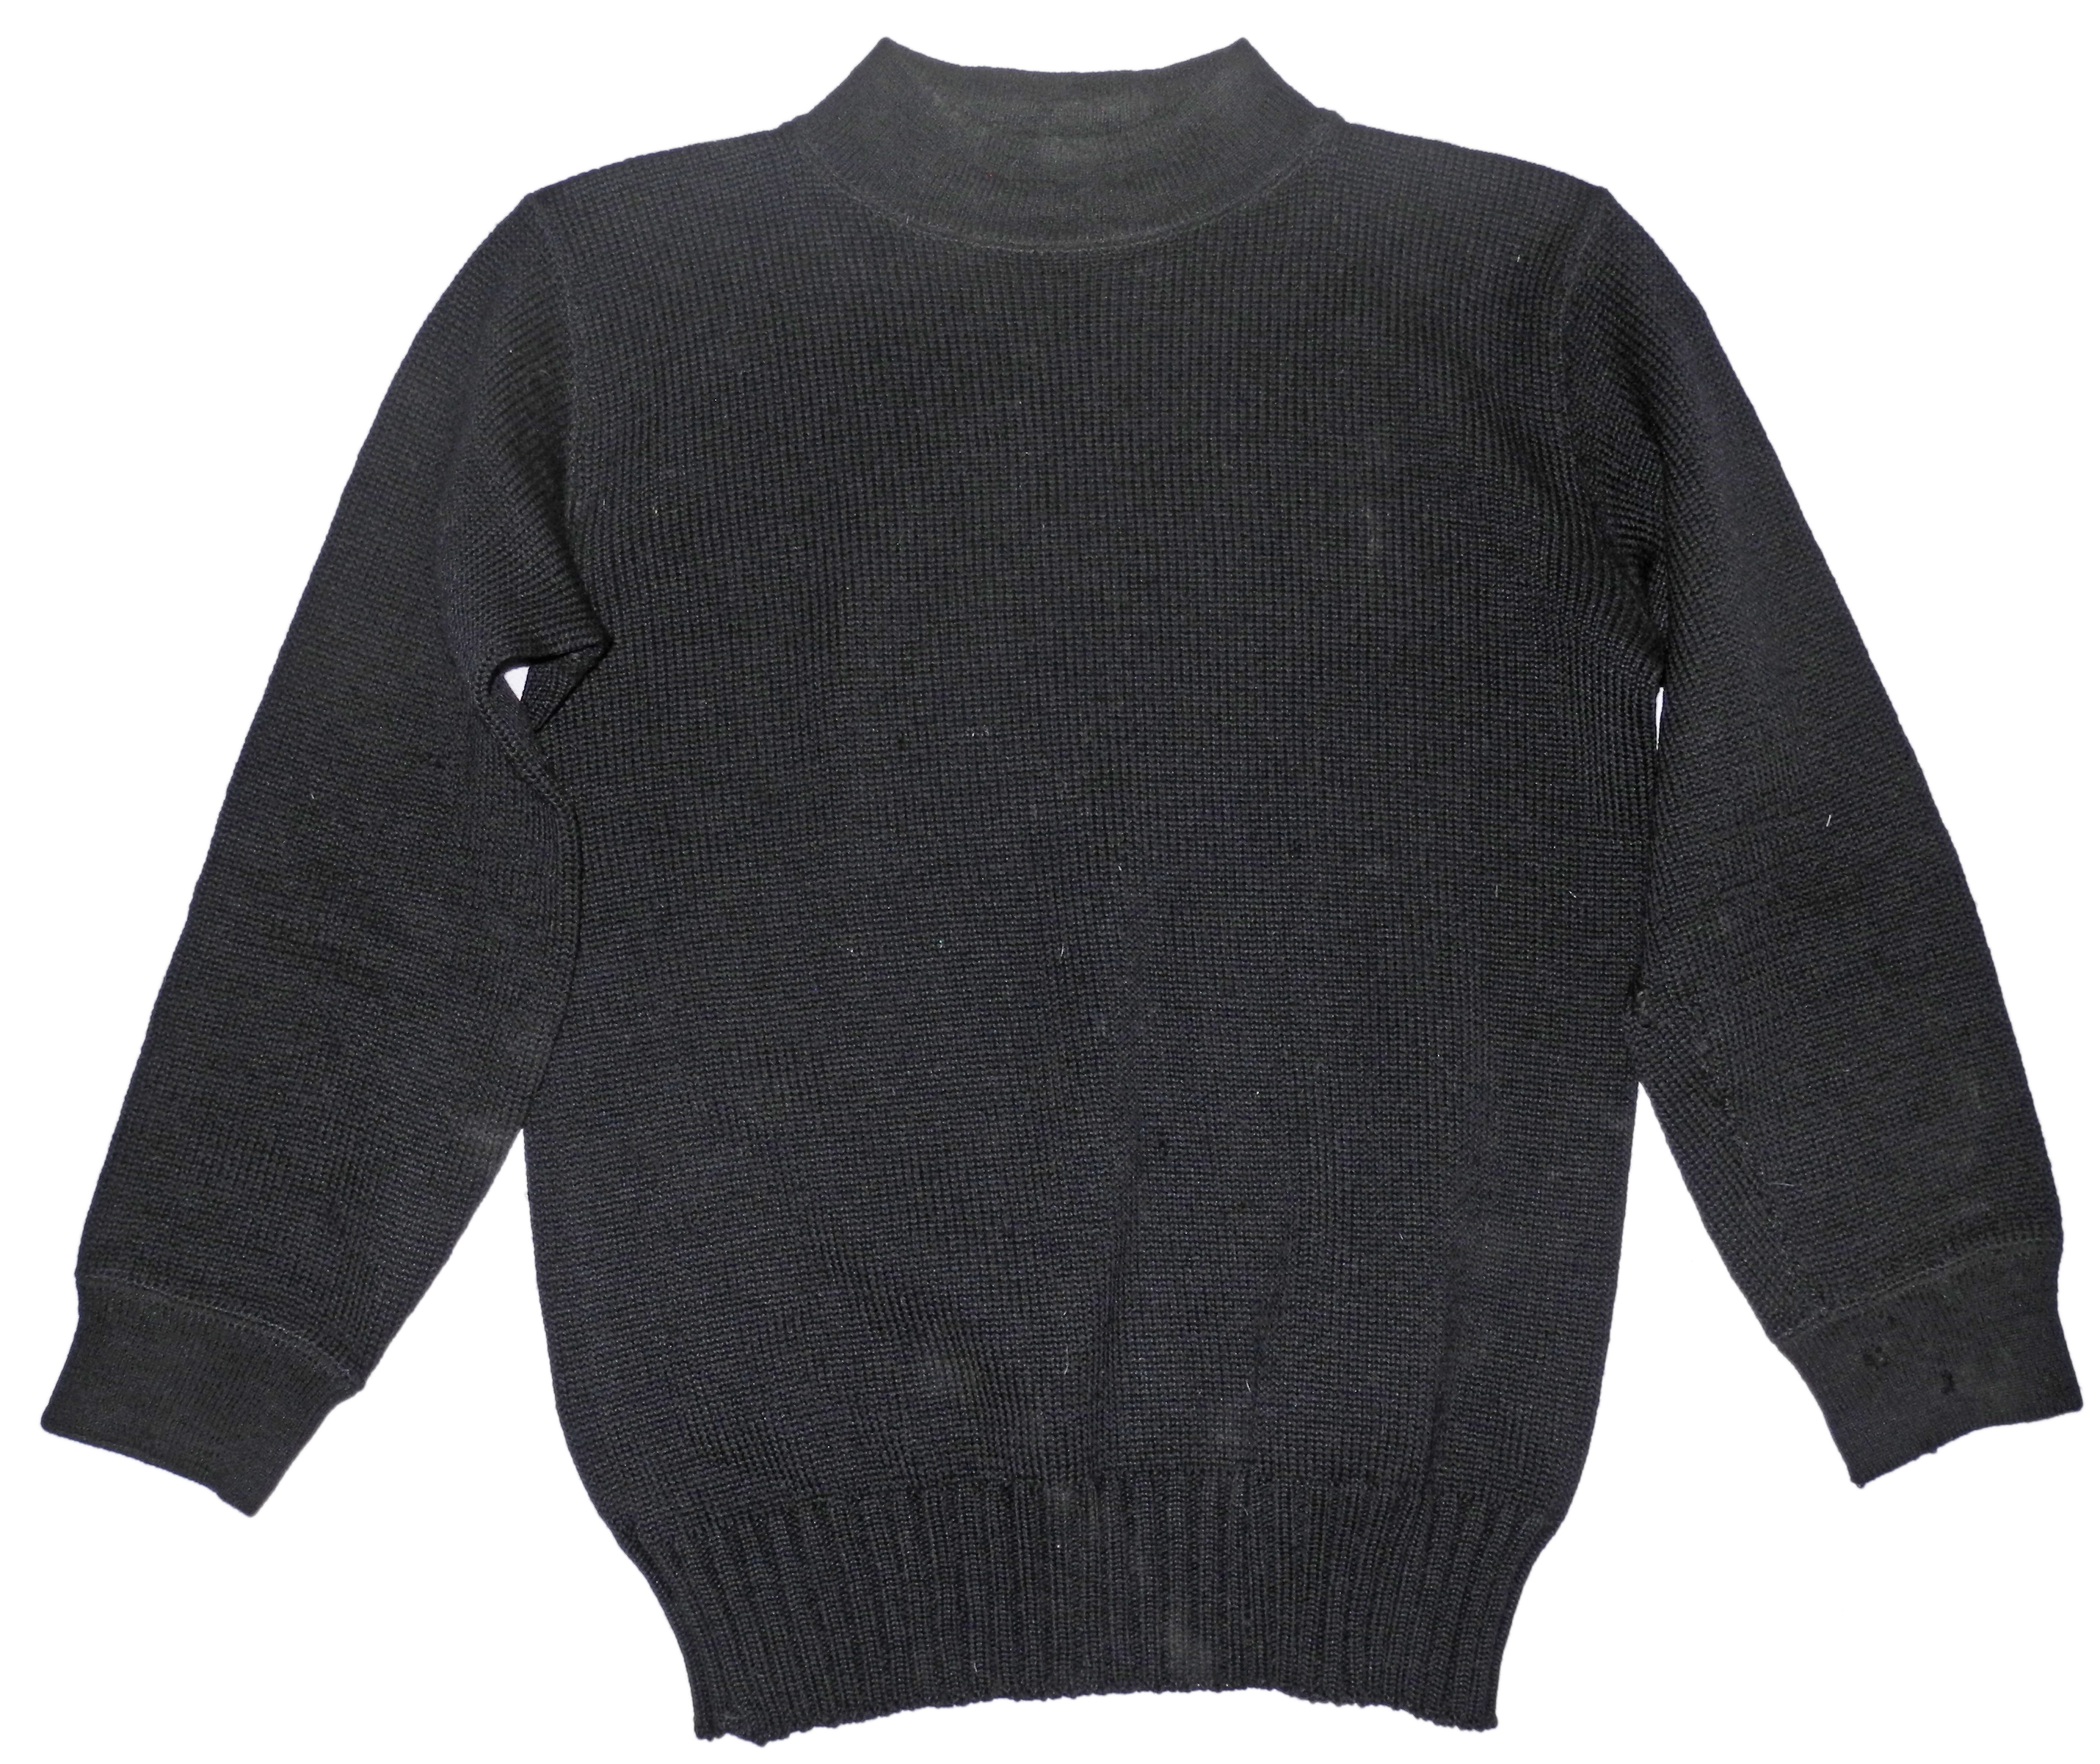 RAF Sweater, Aircrew, Navy Blue 22c/996